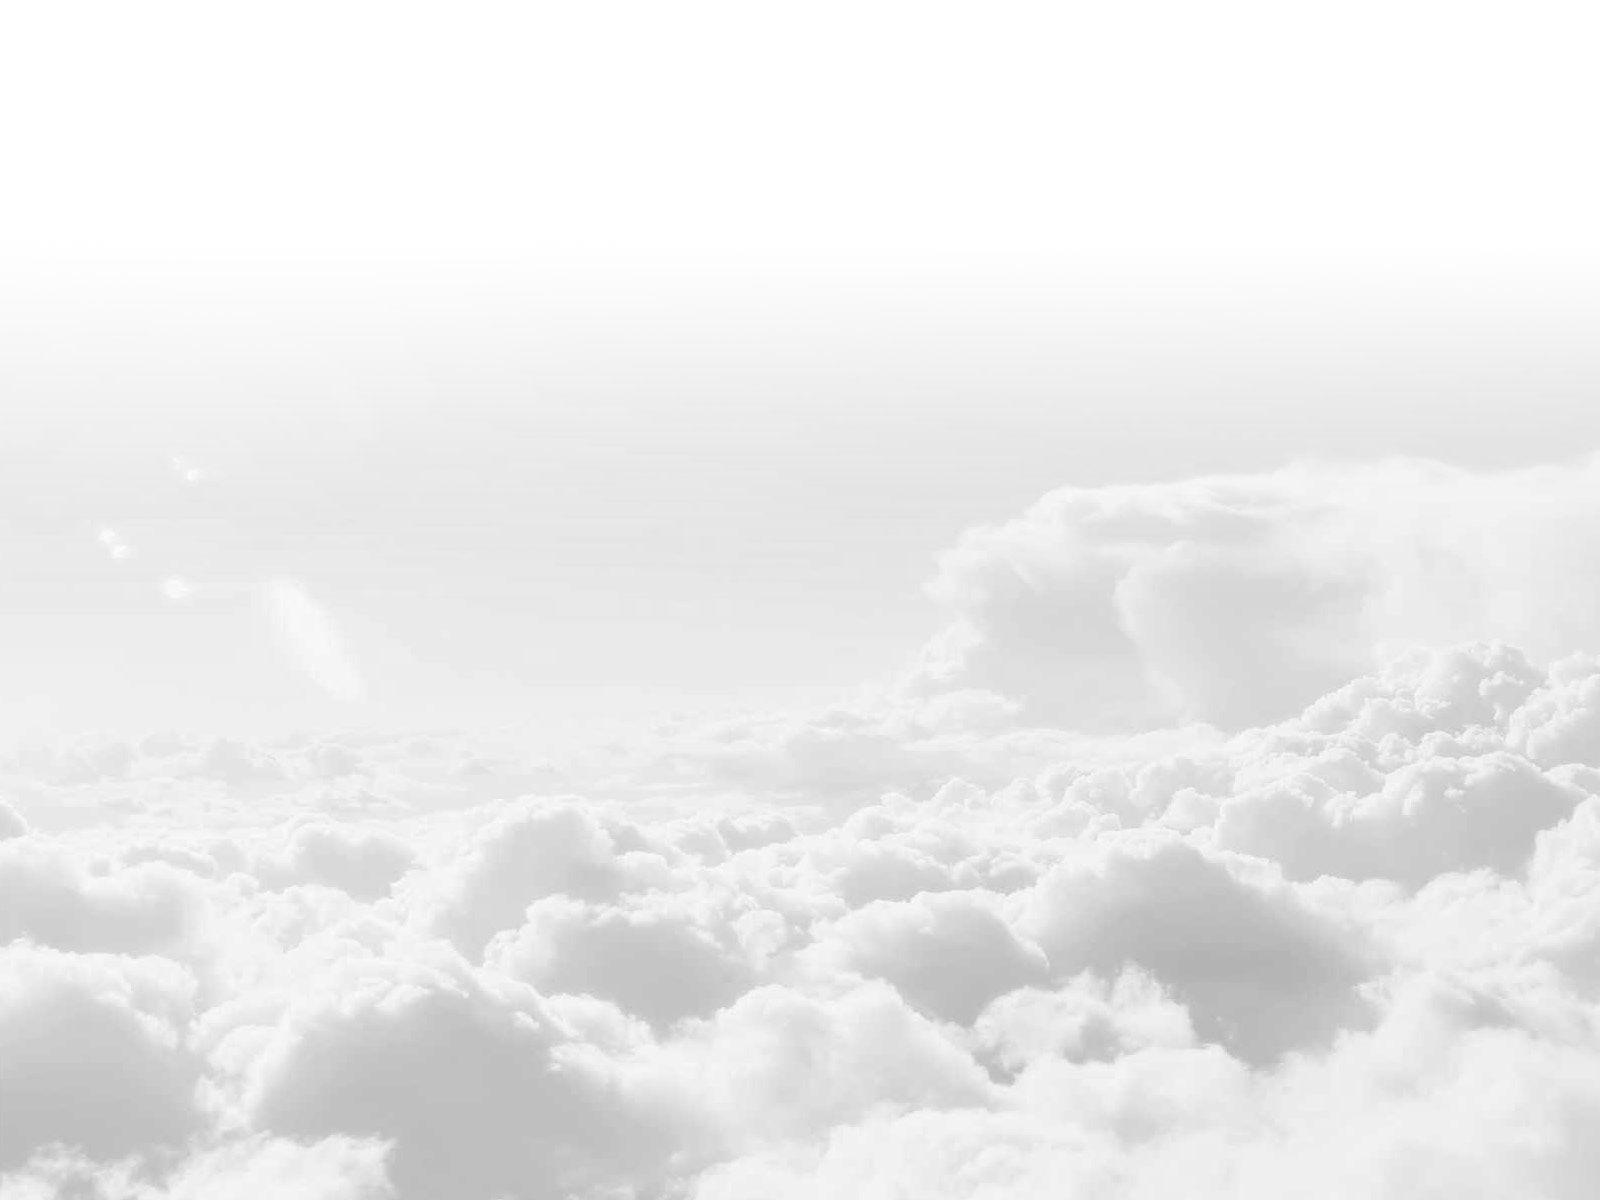 Aesthetic White Wallpapers Top Free Aesthetic White Backgrounds Wallpaperaccess White Aesthetic Black And White Clouds White Wallpaper For Iphone Aesthetic clouds white wallpaper